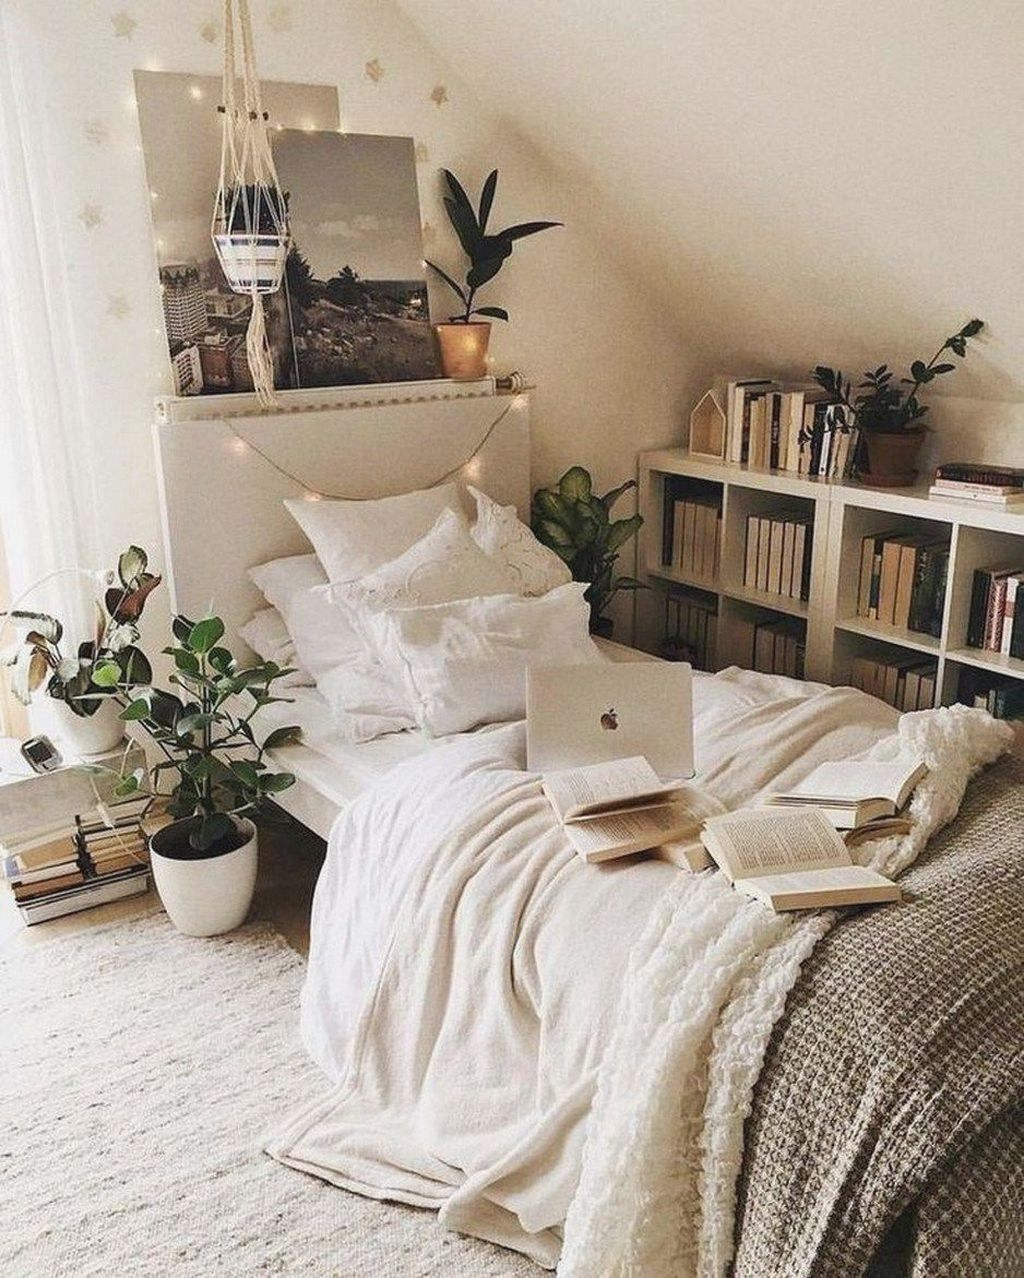 30 Minimalist Bedroom Decoration Ideas That Looks More Cool In 2020 Cozy Small Bedrooms Small Bedroom Decor Small Room Bedroom